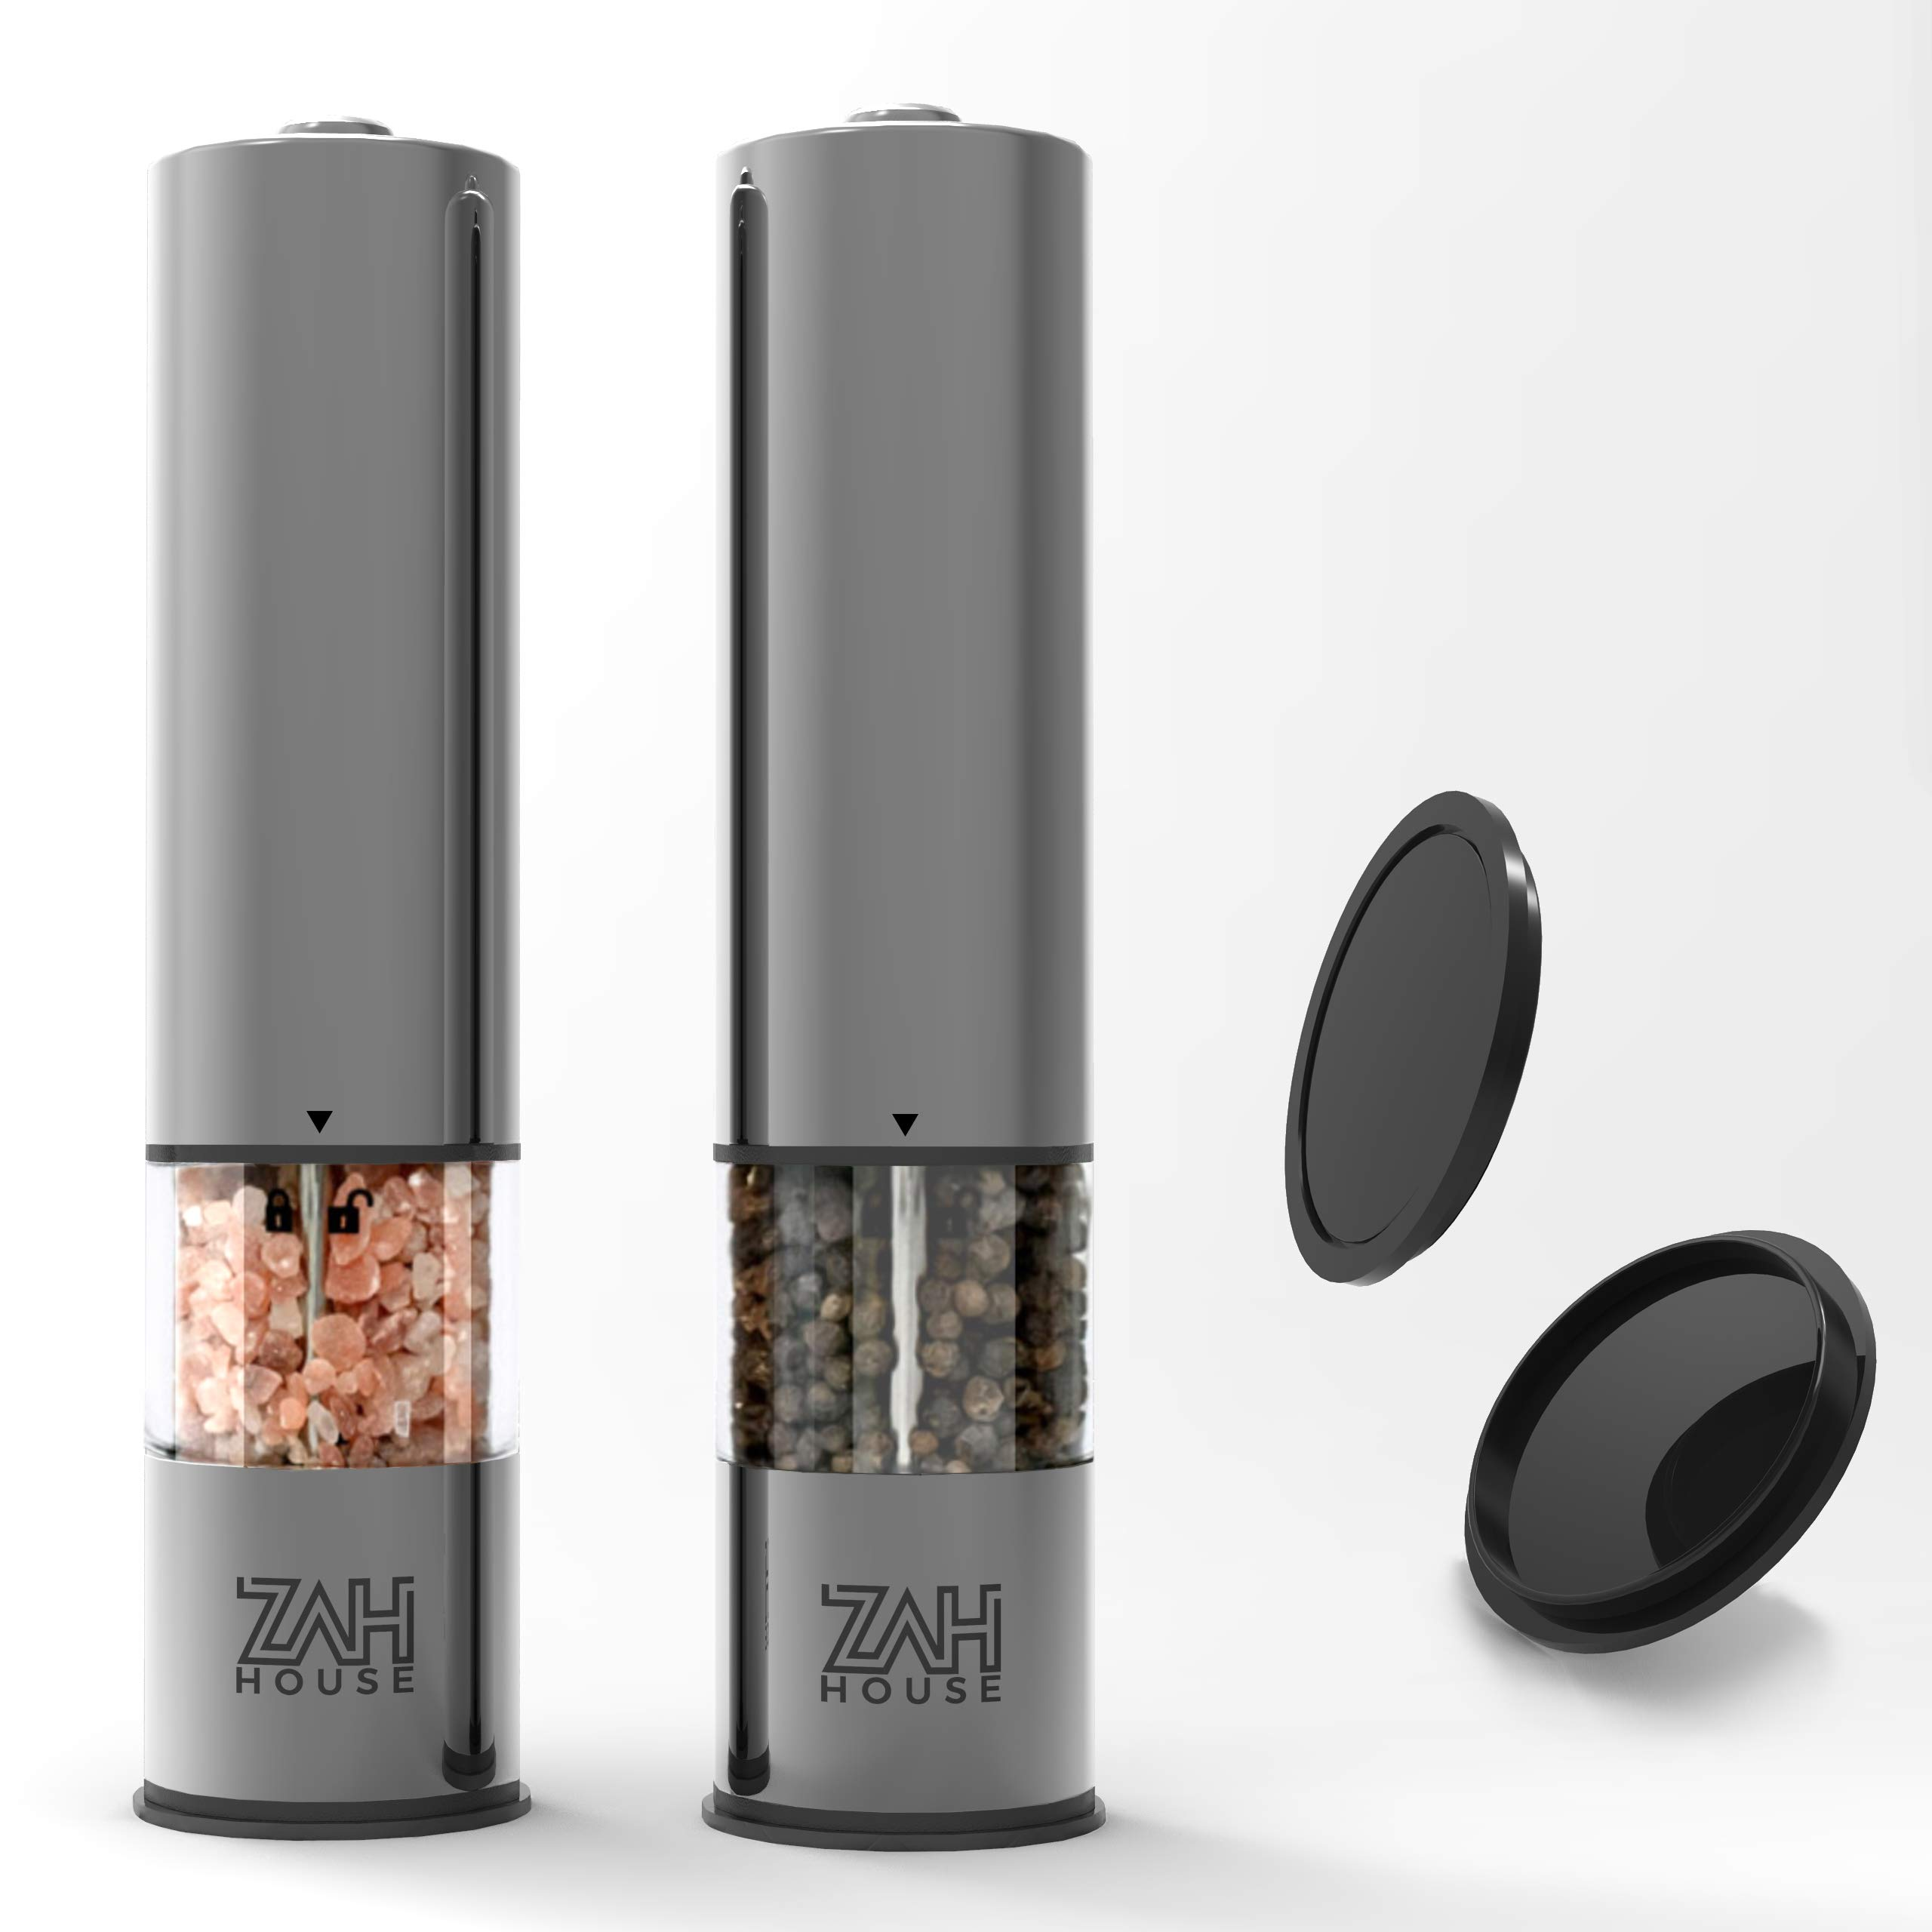 Electric Salt and Pepper Grinders - Set of 2 - Battery Operated Stainless Steel Shakers with Light - Acrylic Chamber - Adjustable Coarseness - Perfect for Grinding Salt, Pepper, Spices, Herbs & More